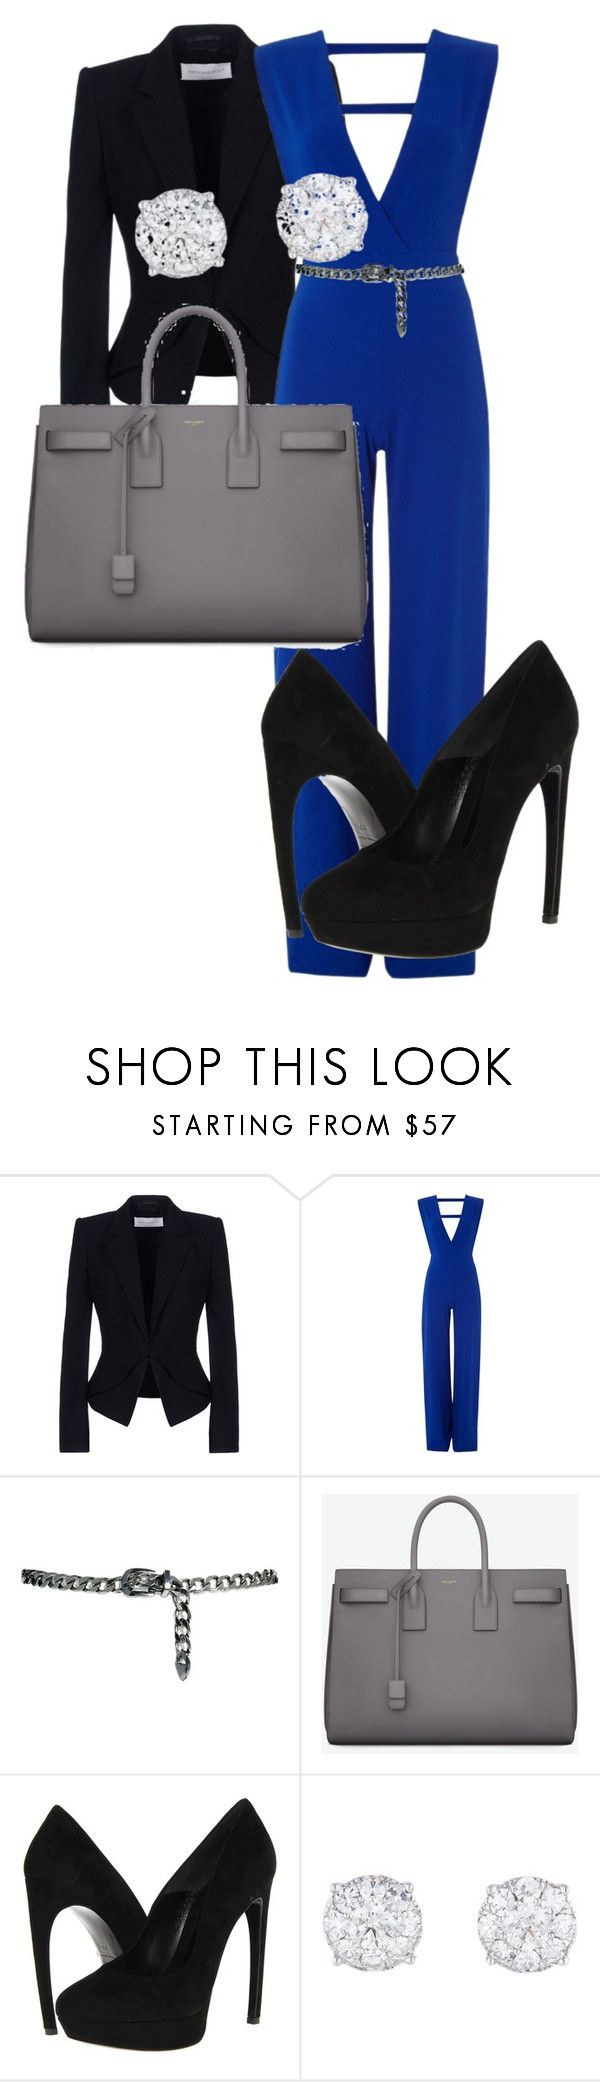 """Career woman"" by kendral266 ❤ liked on Polyvore featuring Viktor & Rolf, MANGO, Yves Saint Laurent and Alexander McQueen"